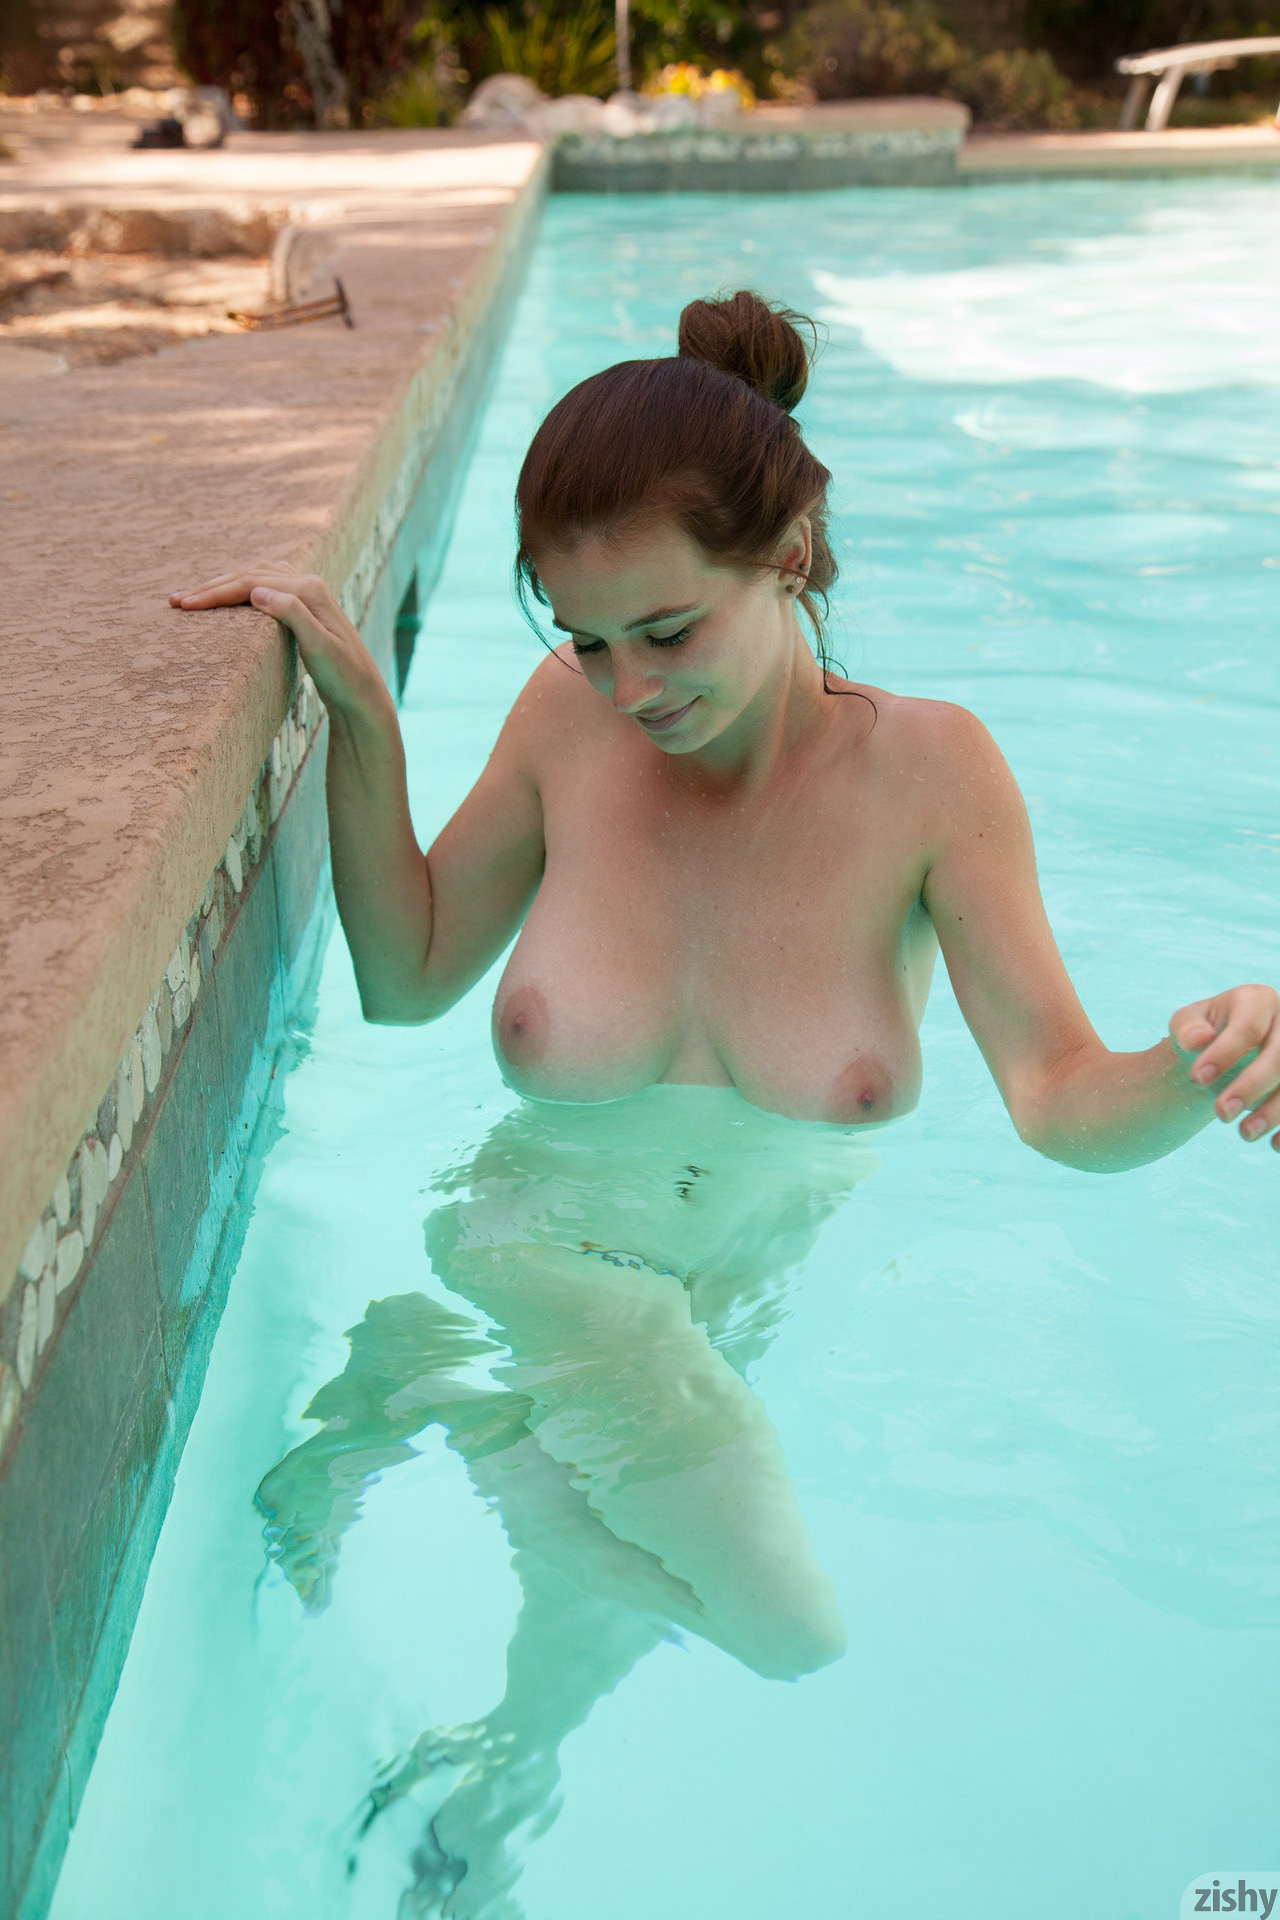 hentai-movies-date-on-the-pool-naked